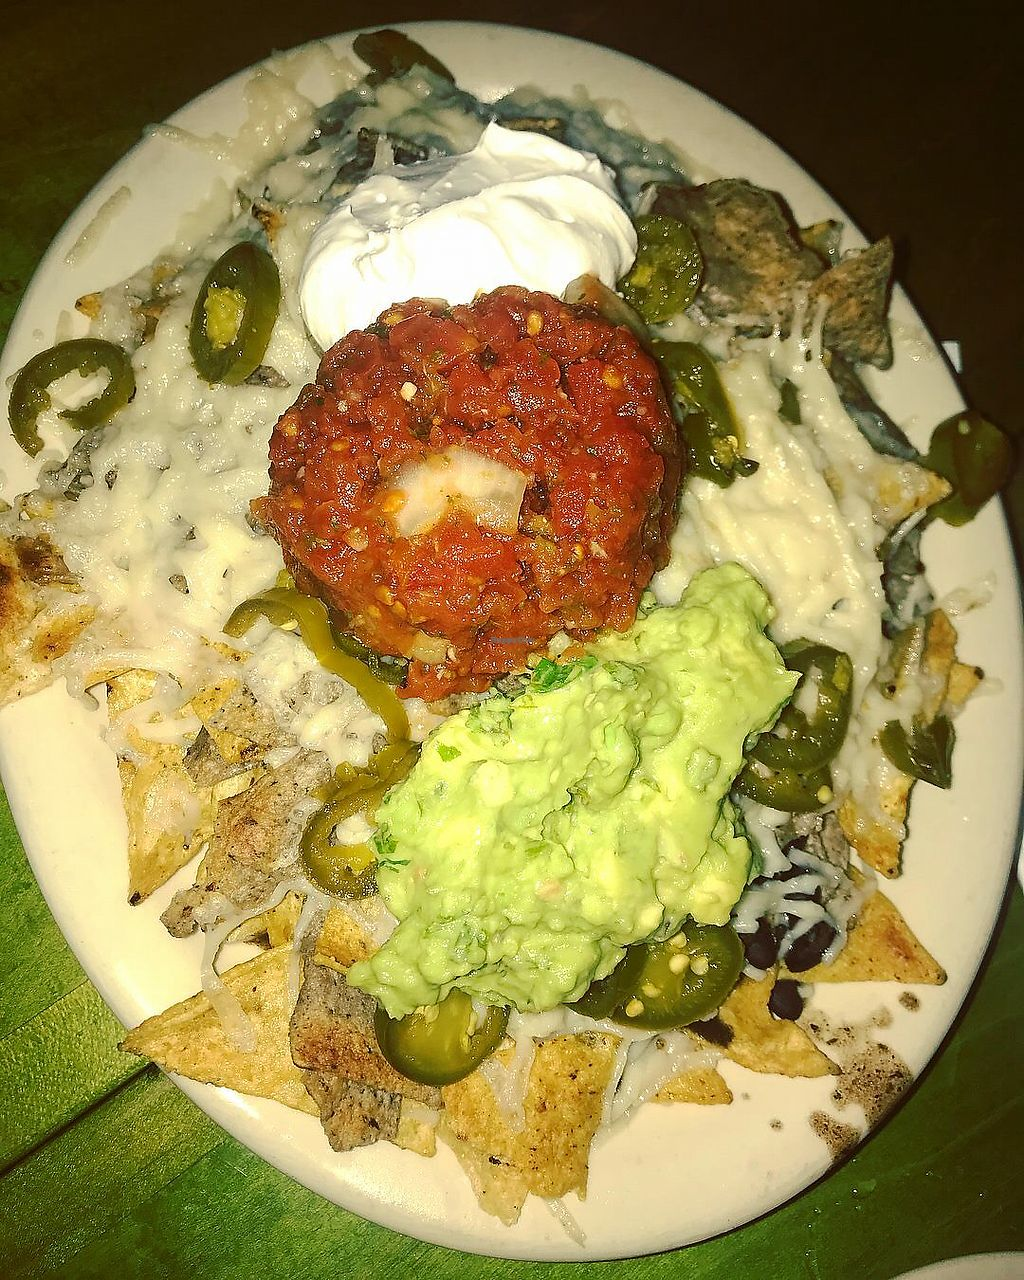 """Photo of Mad Mex  by <a href=""""/members/profile/Tabgreenvegan"""">Tabgreenvegan</a> <br/>Vegan Nachos  <br/> April 19, 2018  - <a href='/contact/abuse/image/7248/388165'>Report</a>"""